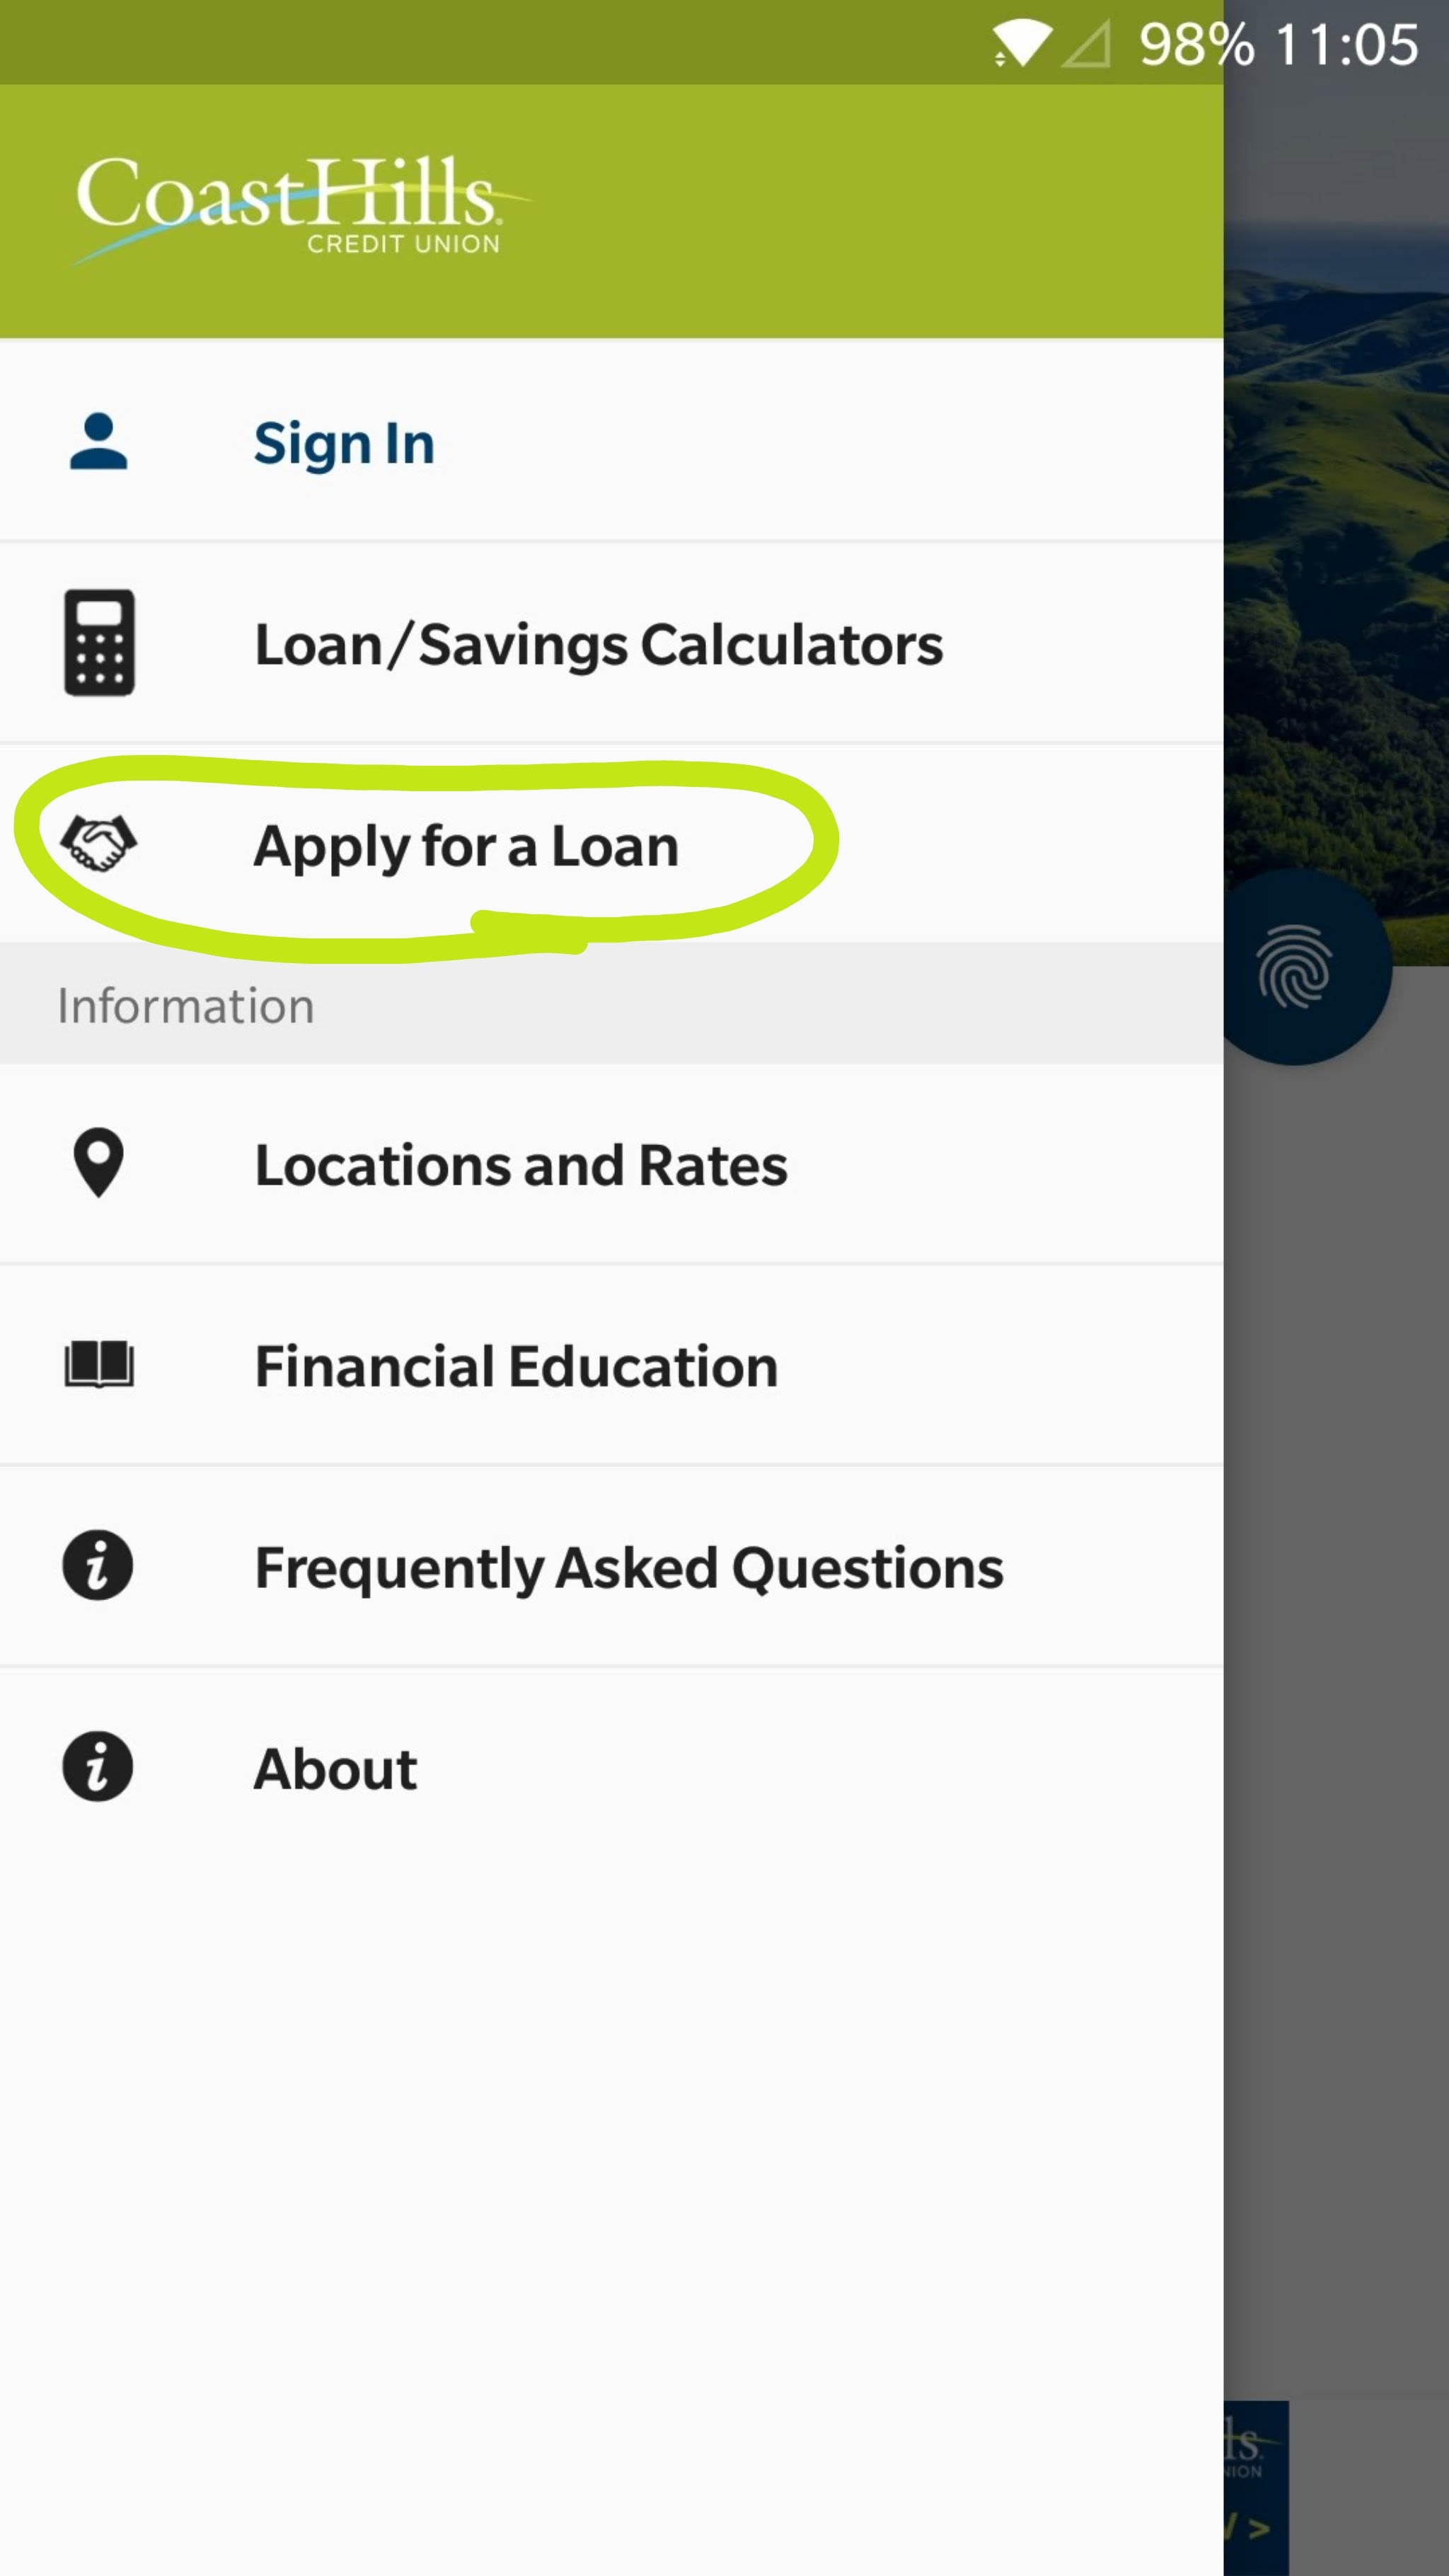 A screenshot of the pull-out menu on the CoastHIlls Mobile Banking app